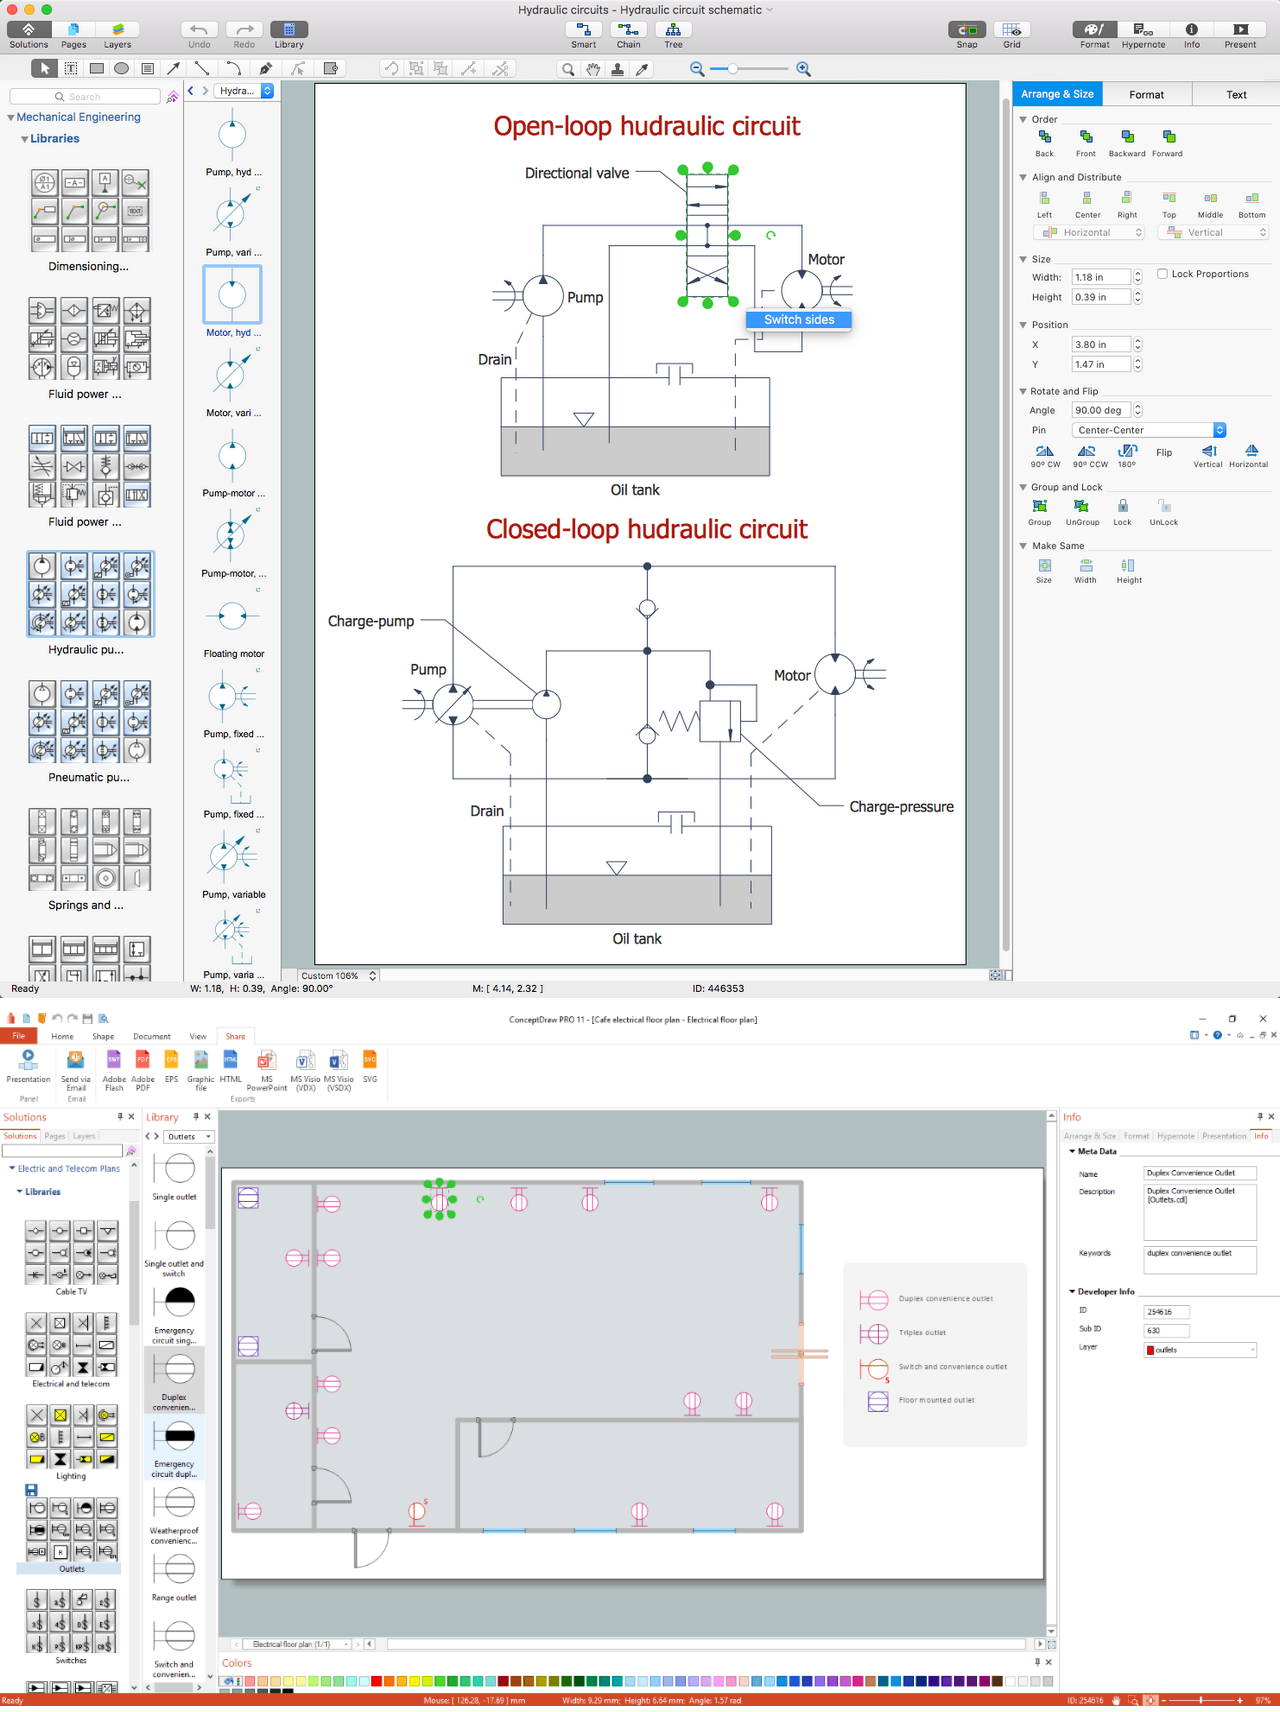 247 Ewb Electronic Simulation Software Free Download additionally Guitar Mini Dpdt Toggle Switch Mini 233073374 together with Electrical Design Software besides Electronics Circuit Darwing Softwares further 992474. on electronic circuit drawing tool